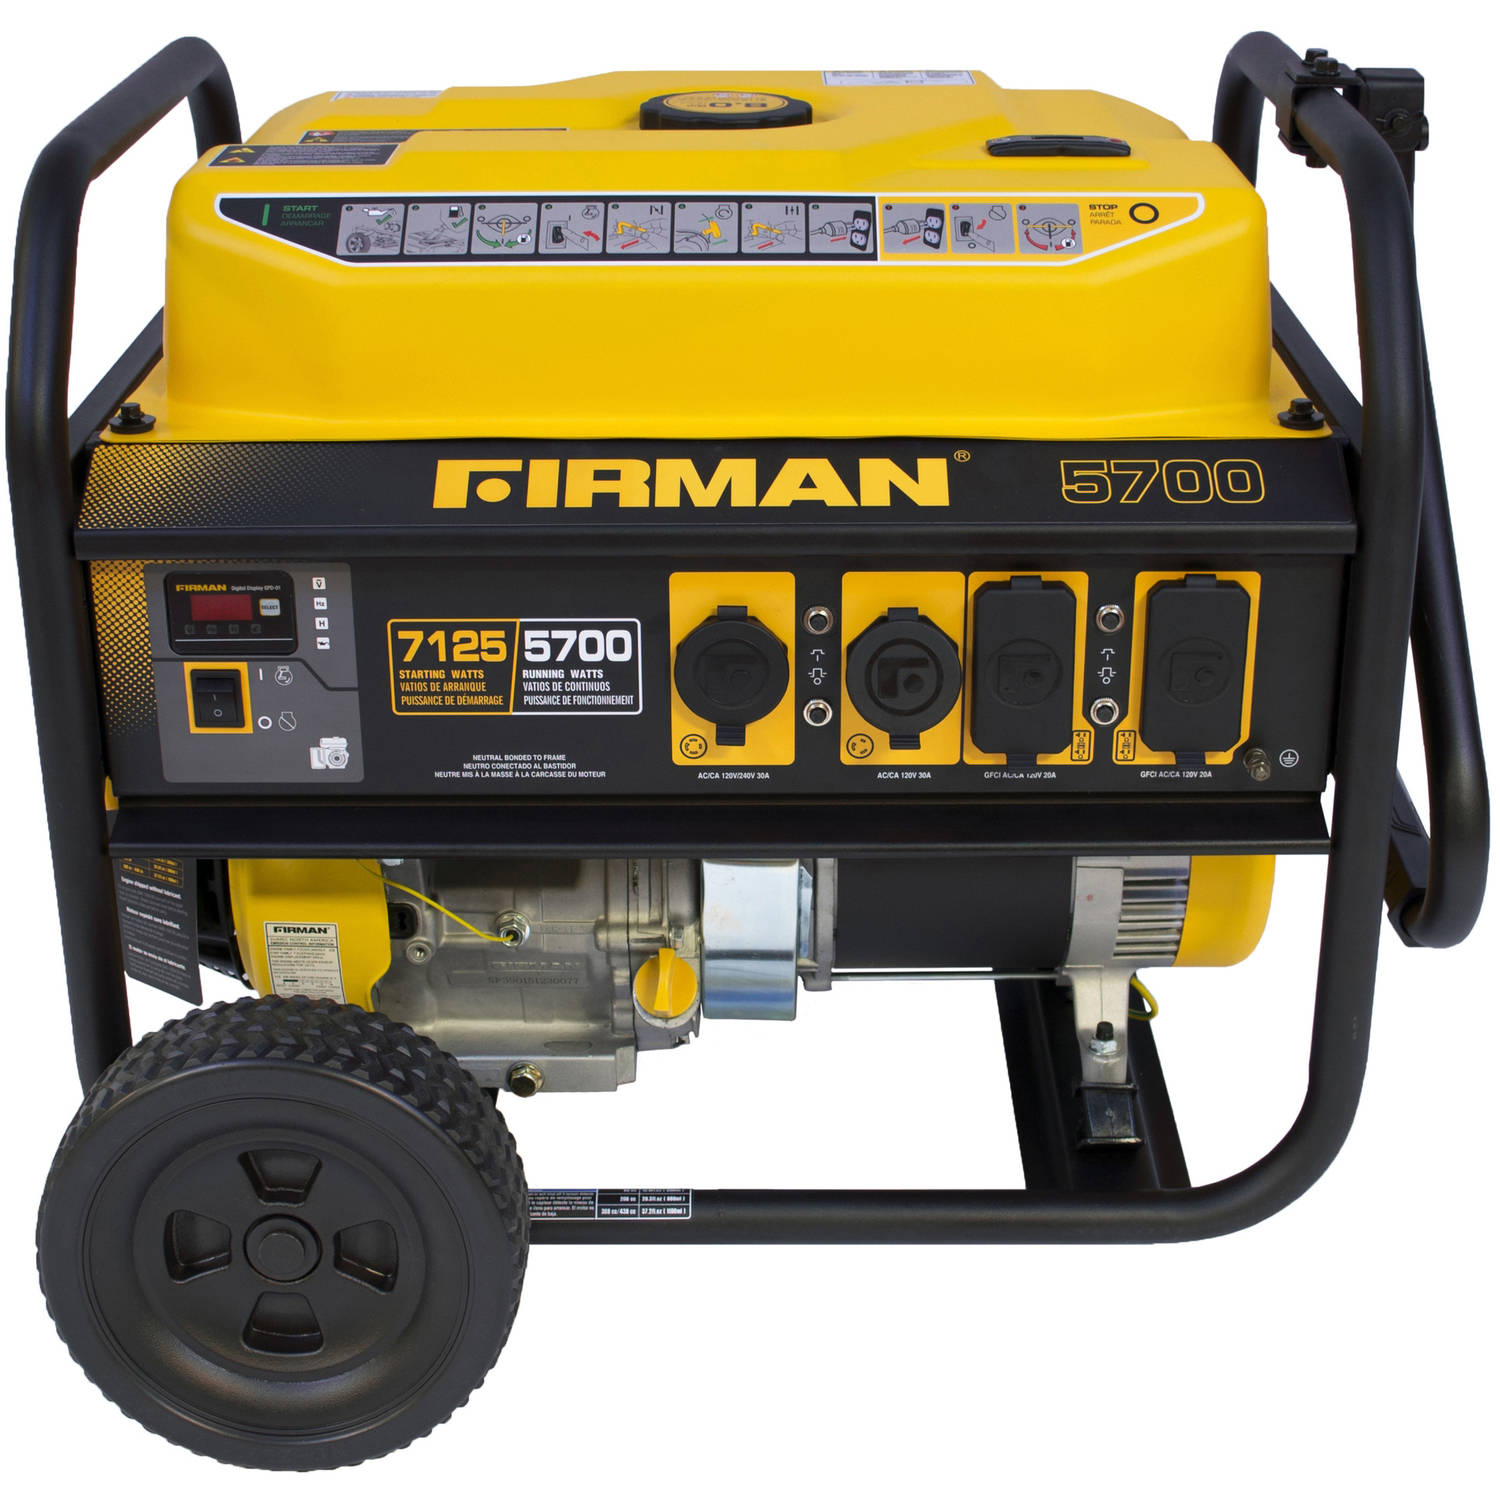 Firman Power Equipment P05701 5700 7100-Watt Portable Gas Generator by Firman Power Equipment